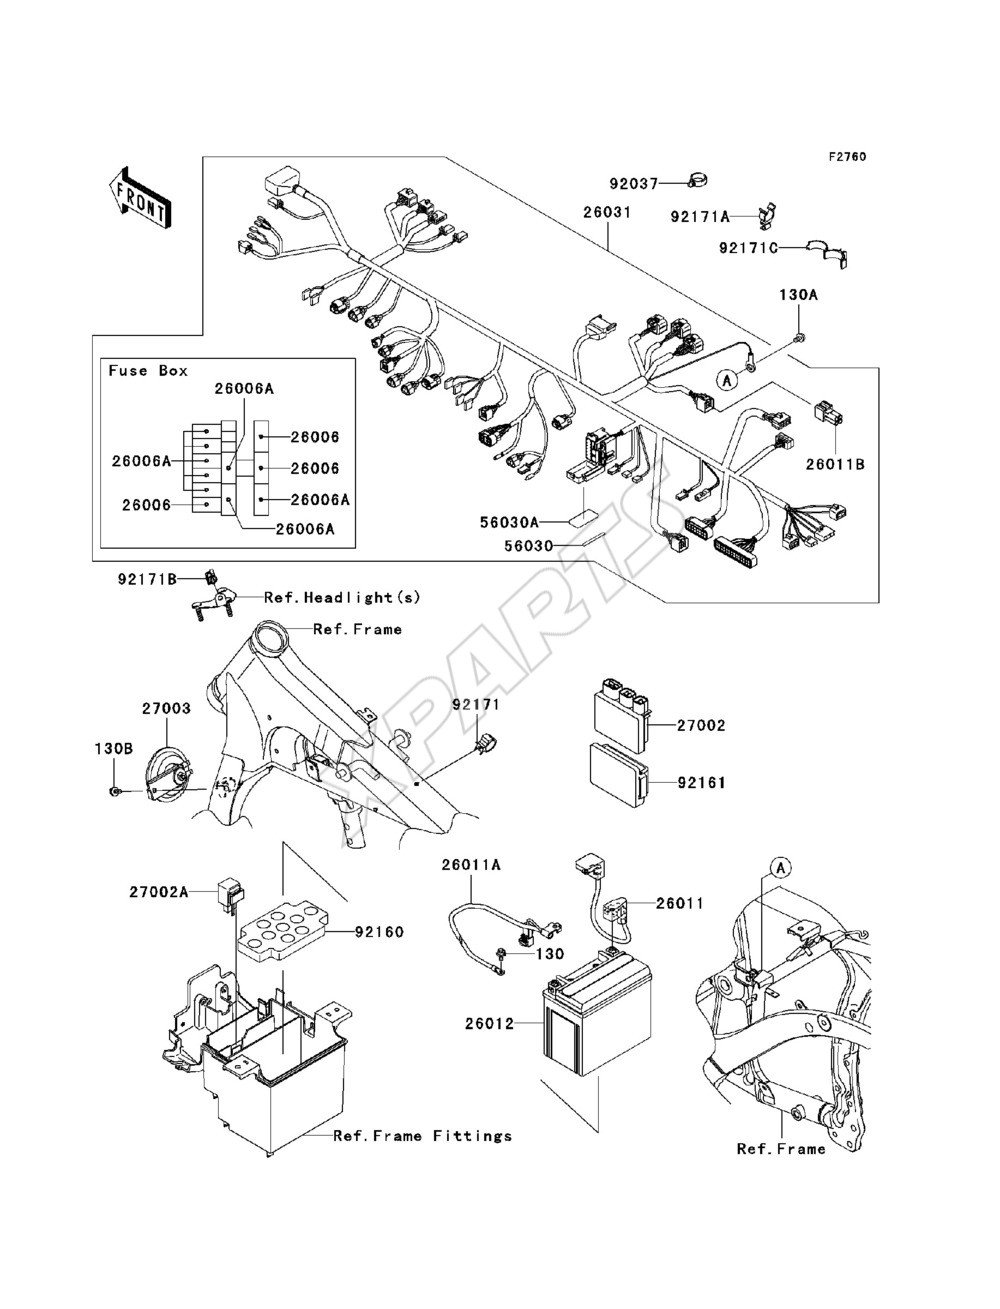 2012 Kawasaki Klr650 Wiring Diagram Library Engine Vulcan 900 Custom Trusted 1997 Chevy 1500 Brake Schematic